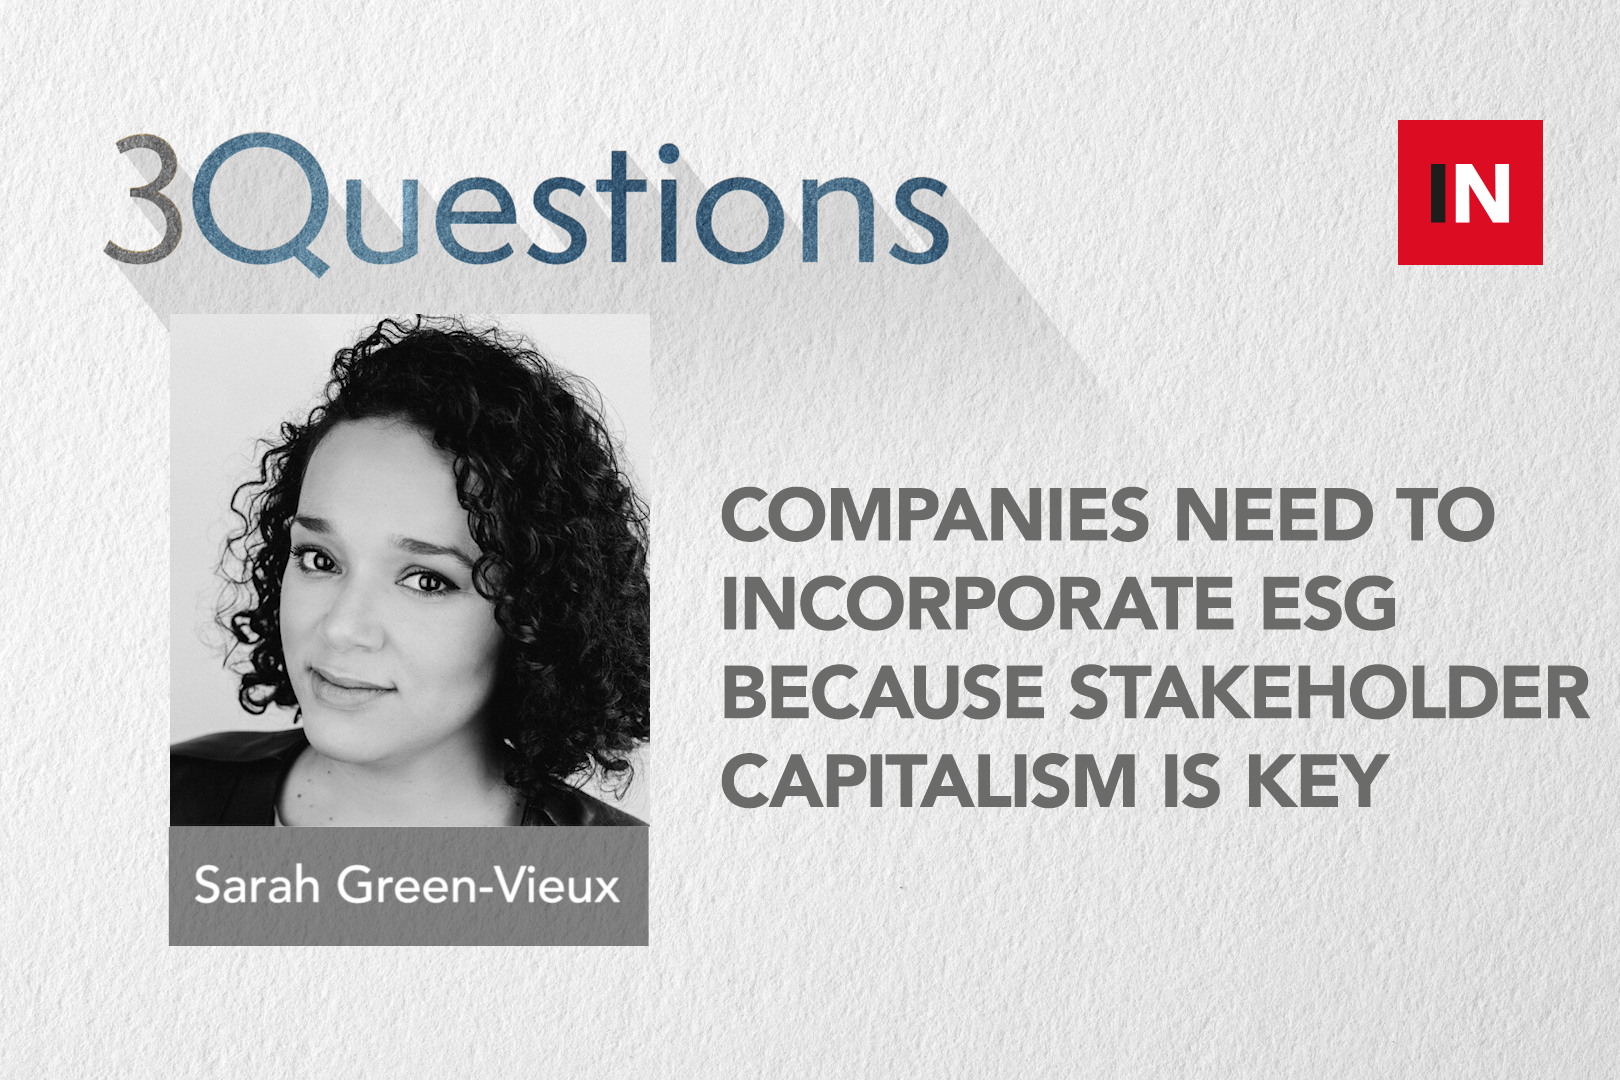 Companies need to incorporate ESG because stakeholder capitalism is key